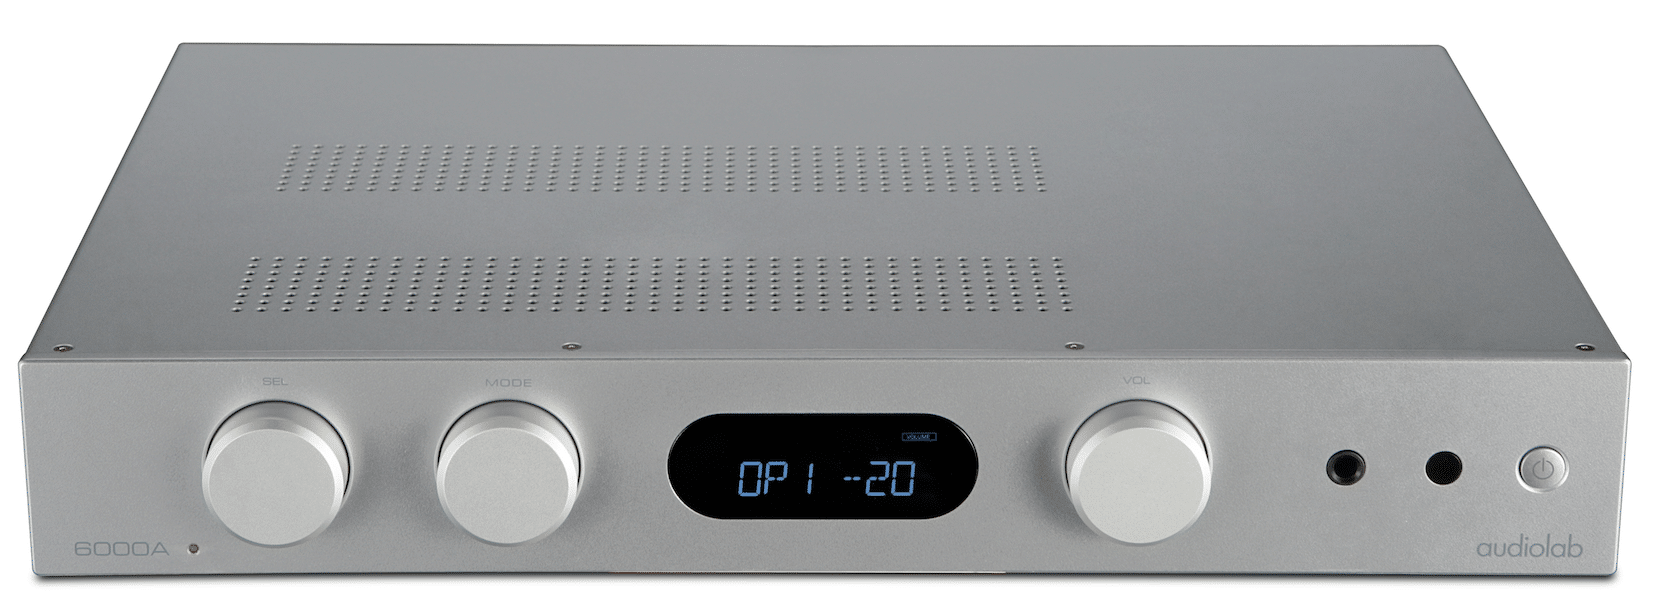 6000A integrated amplifier From Audiolab